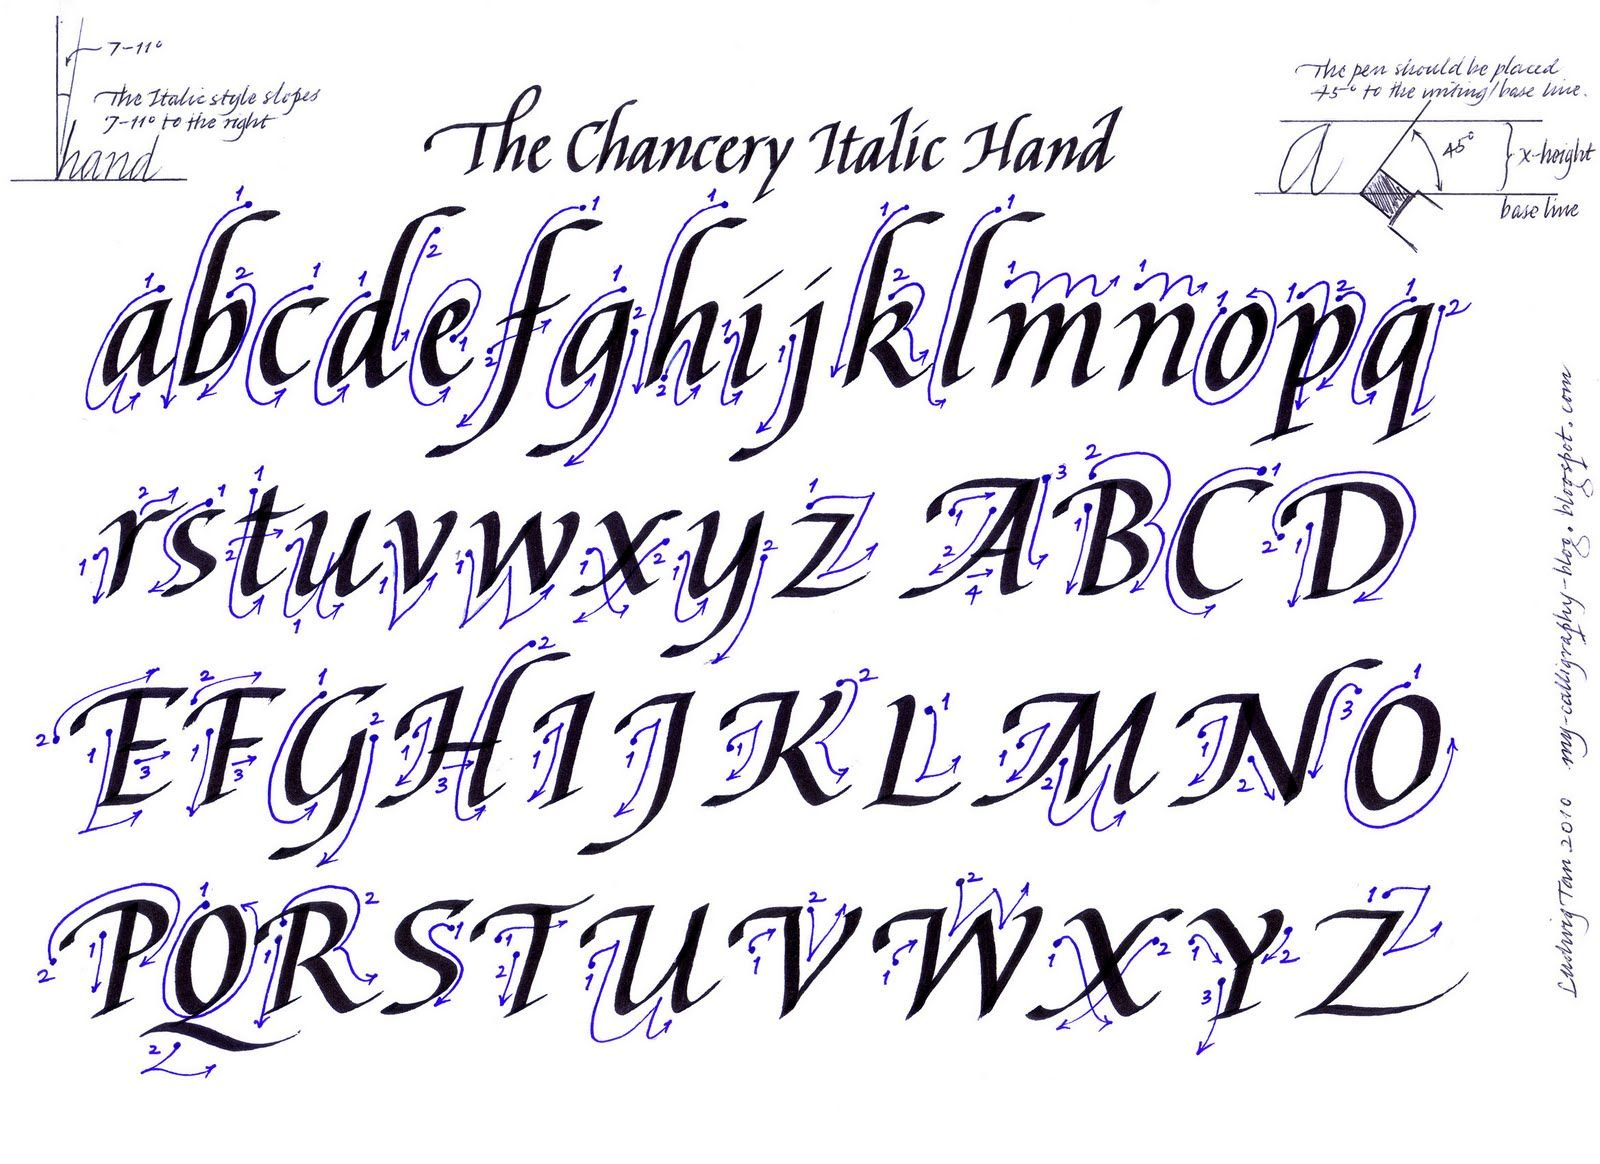 calligraphy alphabet guide - chancery italic hand | calligraphy